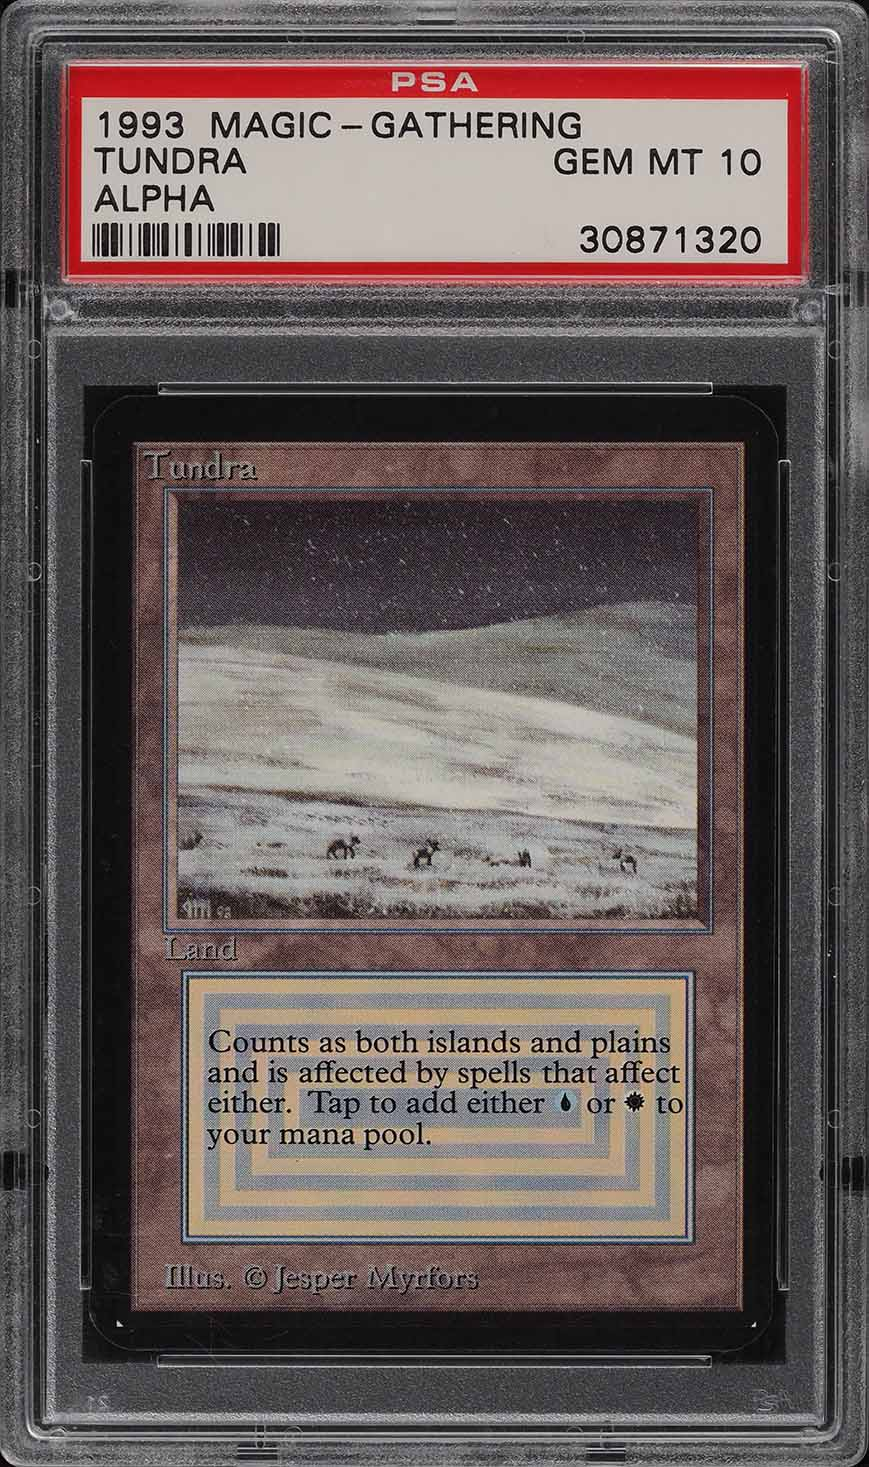 1993 Magic The Gathering MTG Alpha Dual Land Tundra R L PSA 10 GEM MINT (PWCC) - Image 1